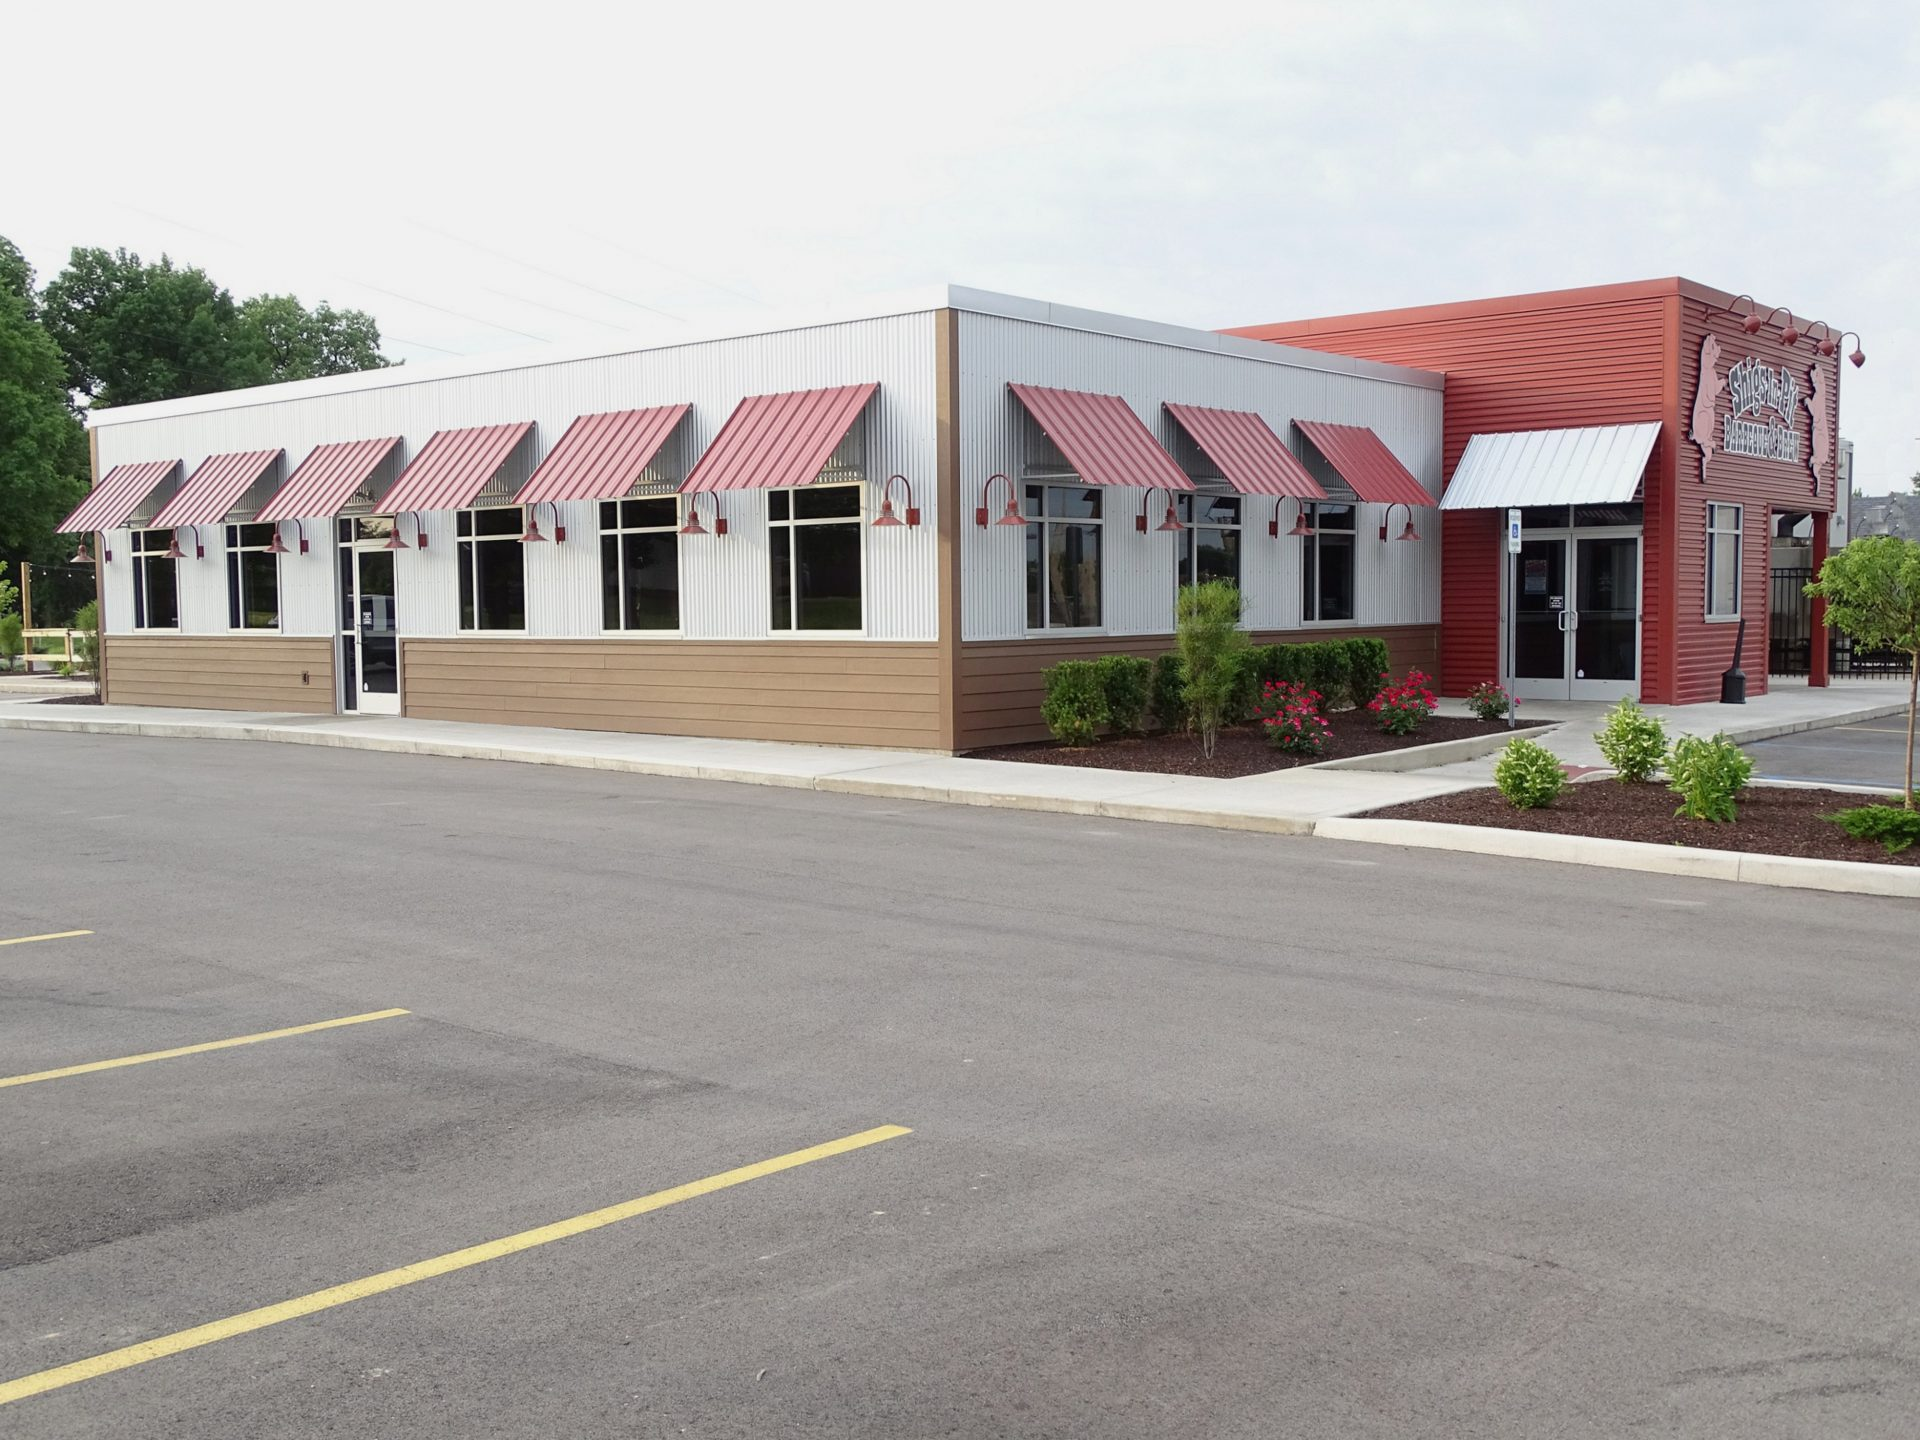 Commercial construction in Ft. Wayne